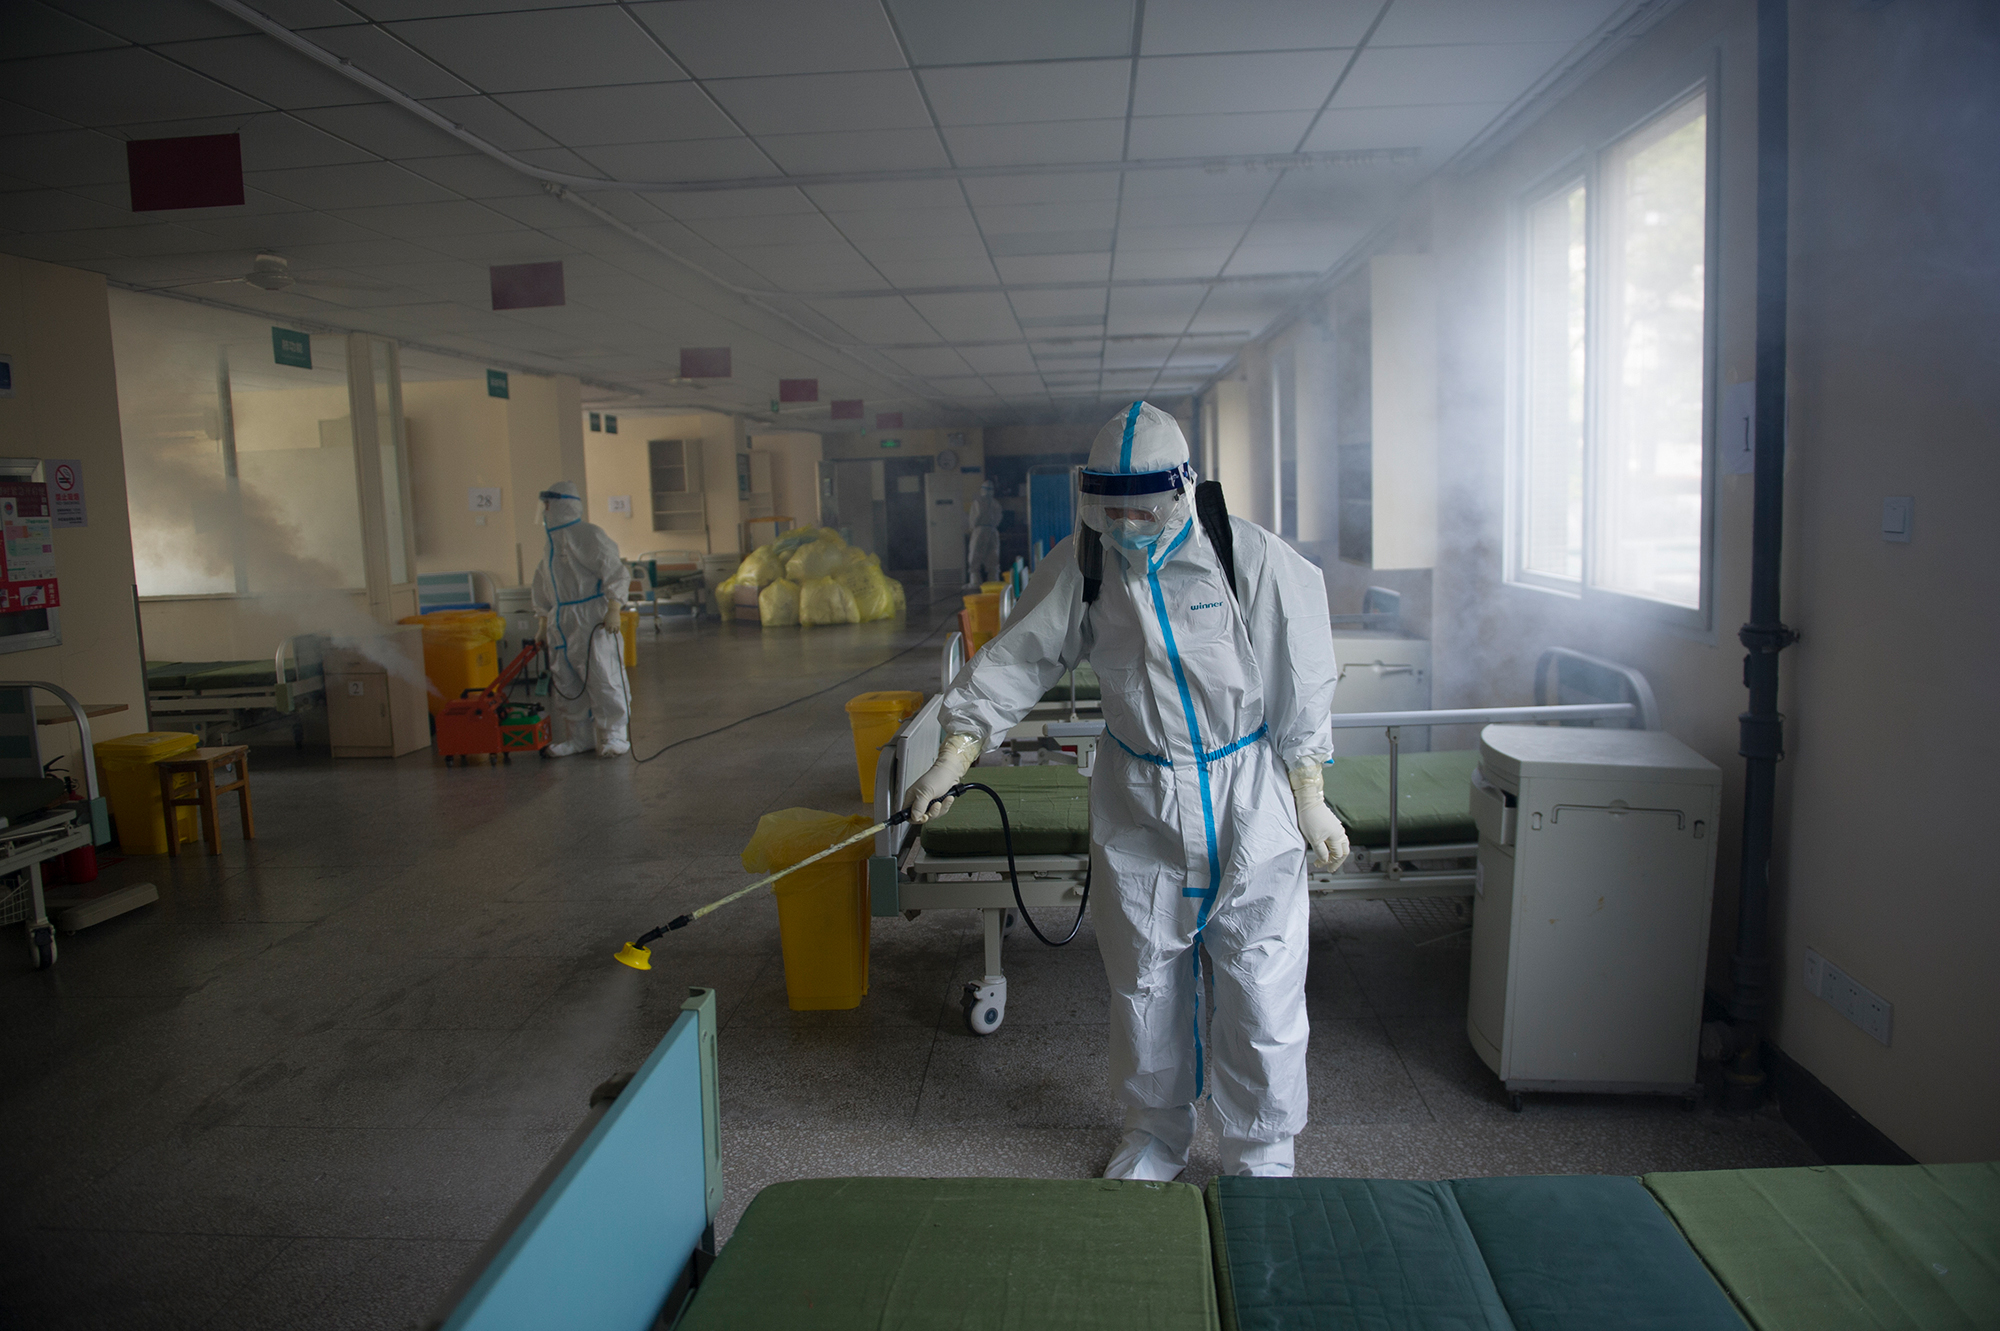 A worker disinfects around the No. 7 Hospital, once designated for only coronavirus patients, in Wuhan in central China's Hubei province on Thursday, March 19. The hospital is getting back to be a normal hospital after the last coronavirus patient was transferred away.